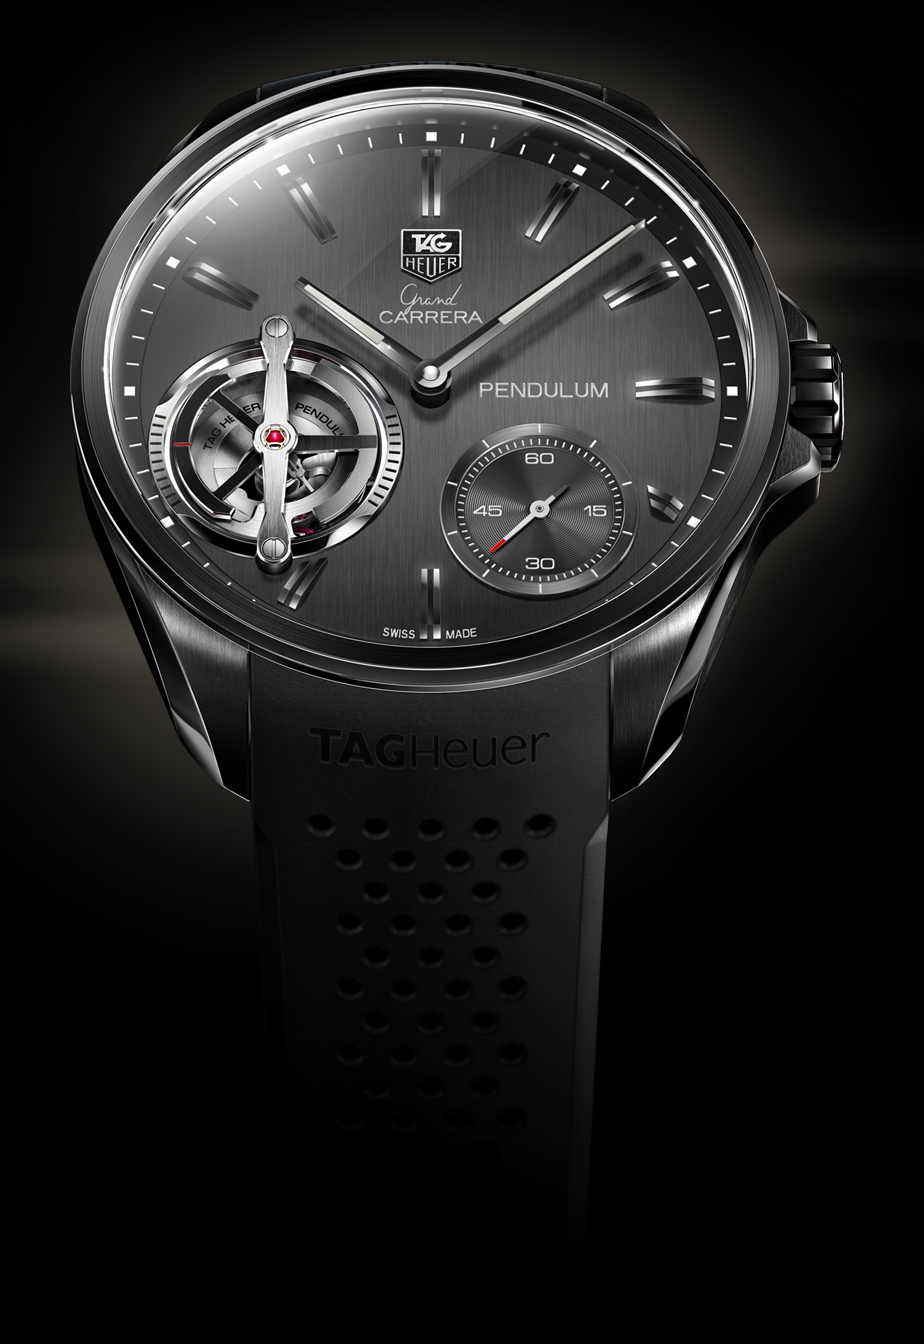 TAG Heuer Pendulum Concept Watch